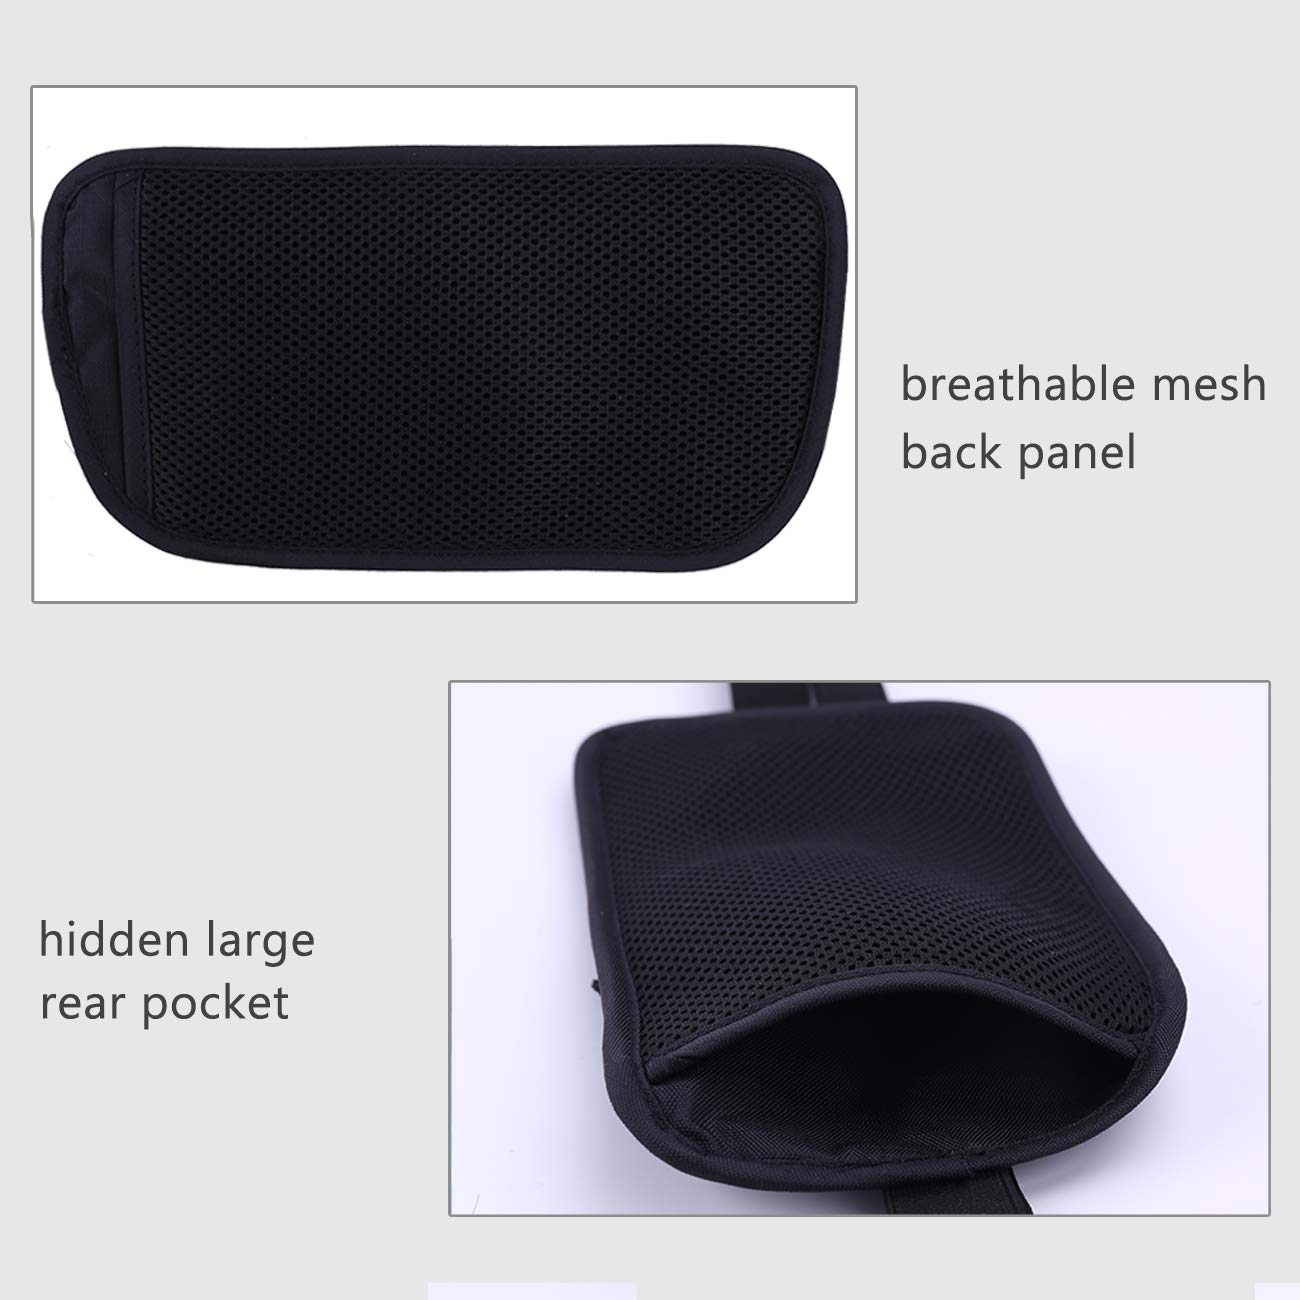 Travel Money Belt Blocking Wallet For Credit Card & Passport Holder With 2pcs RFID Sleeves (Black) by LANNEY (Image #5)